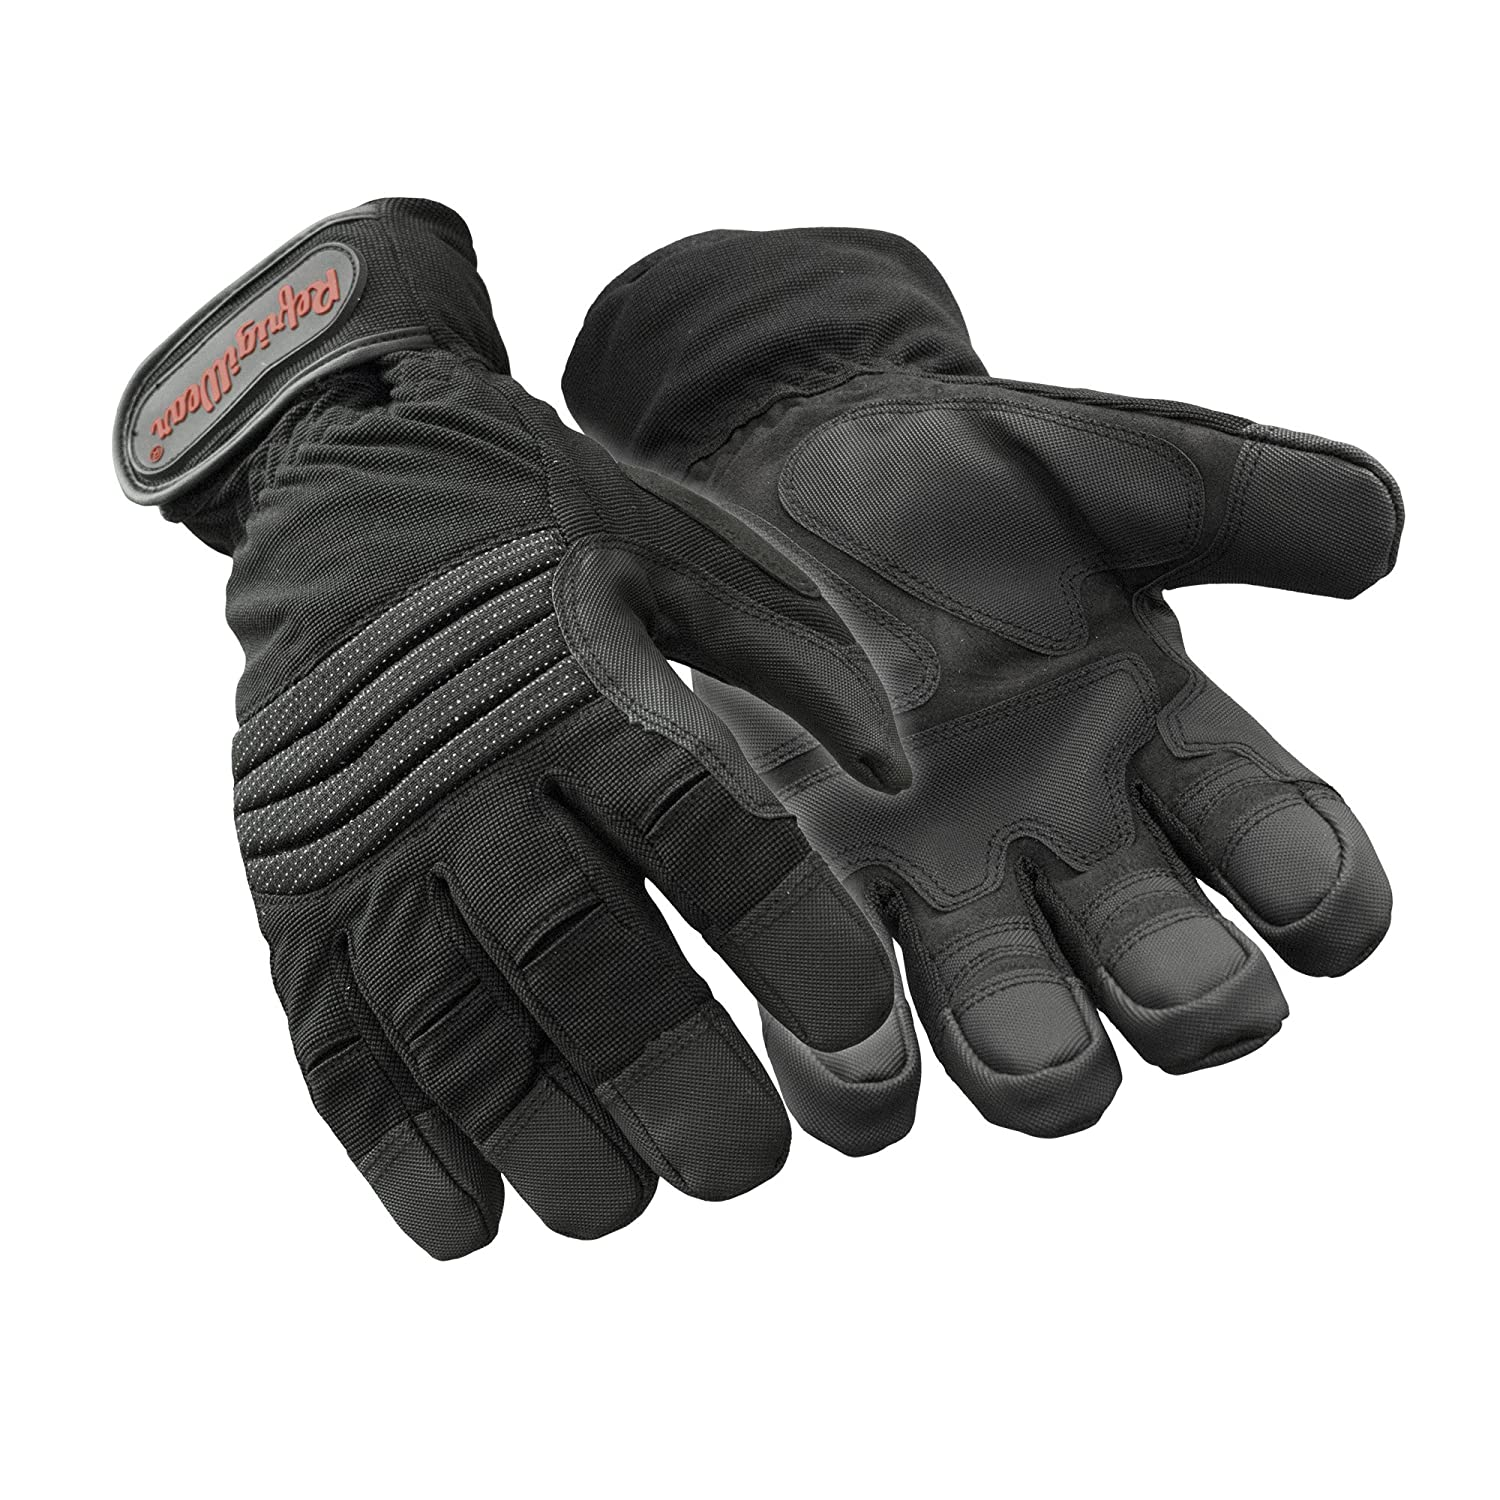 RefrigiWear ArcticFit Waterproof Fiberfill Insulated Gloves with Impact Protection Black, X-Large